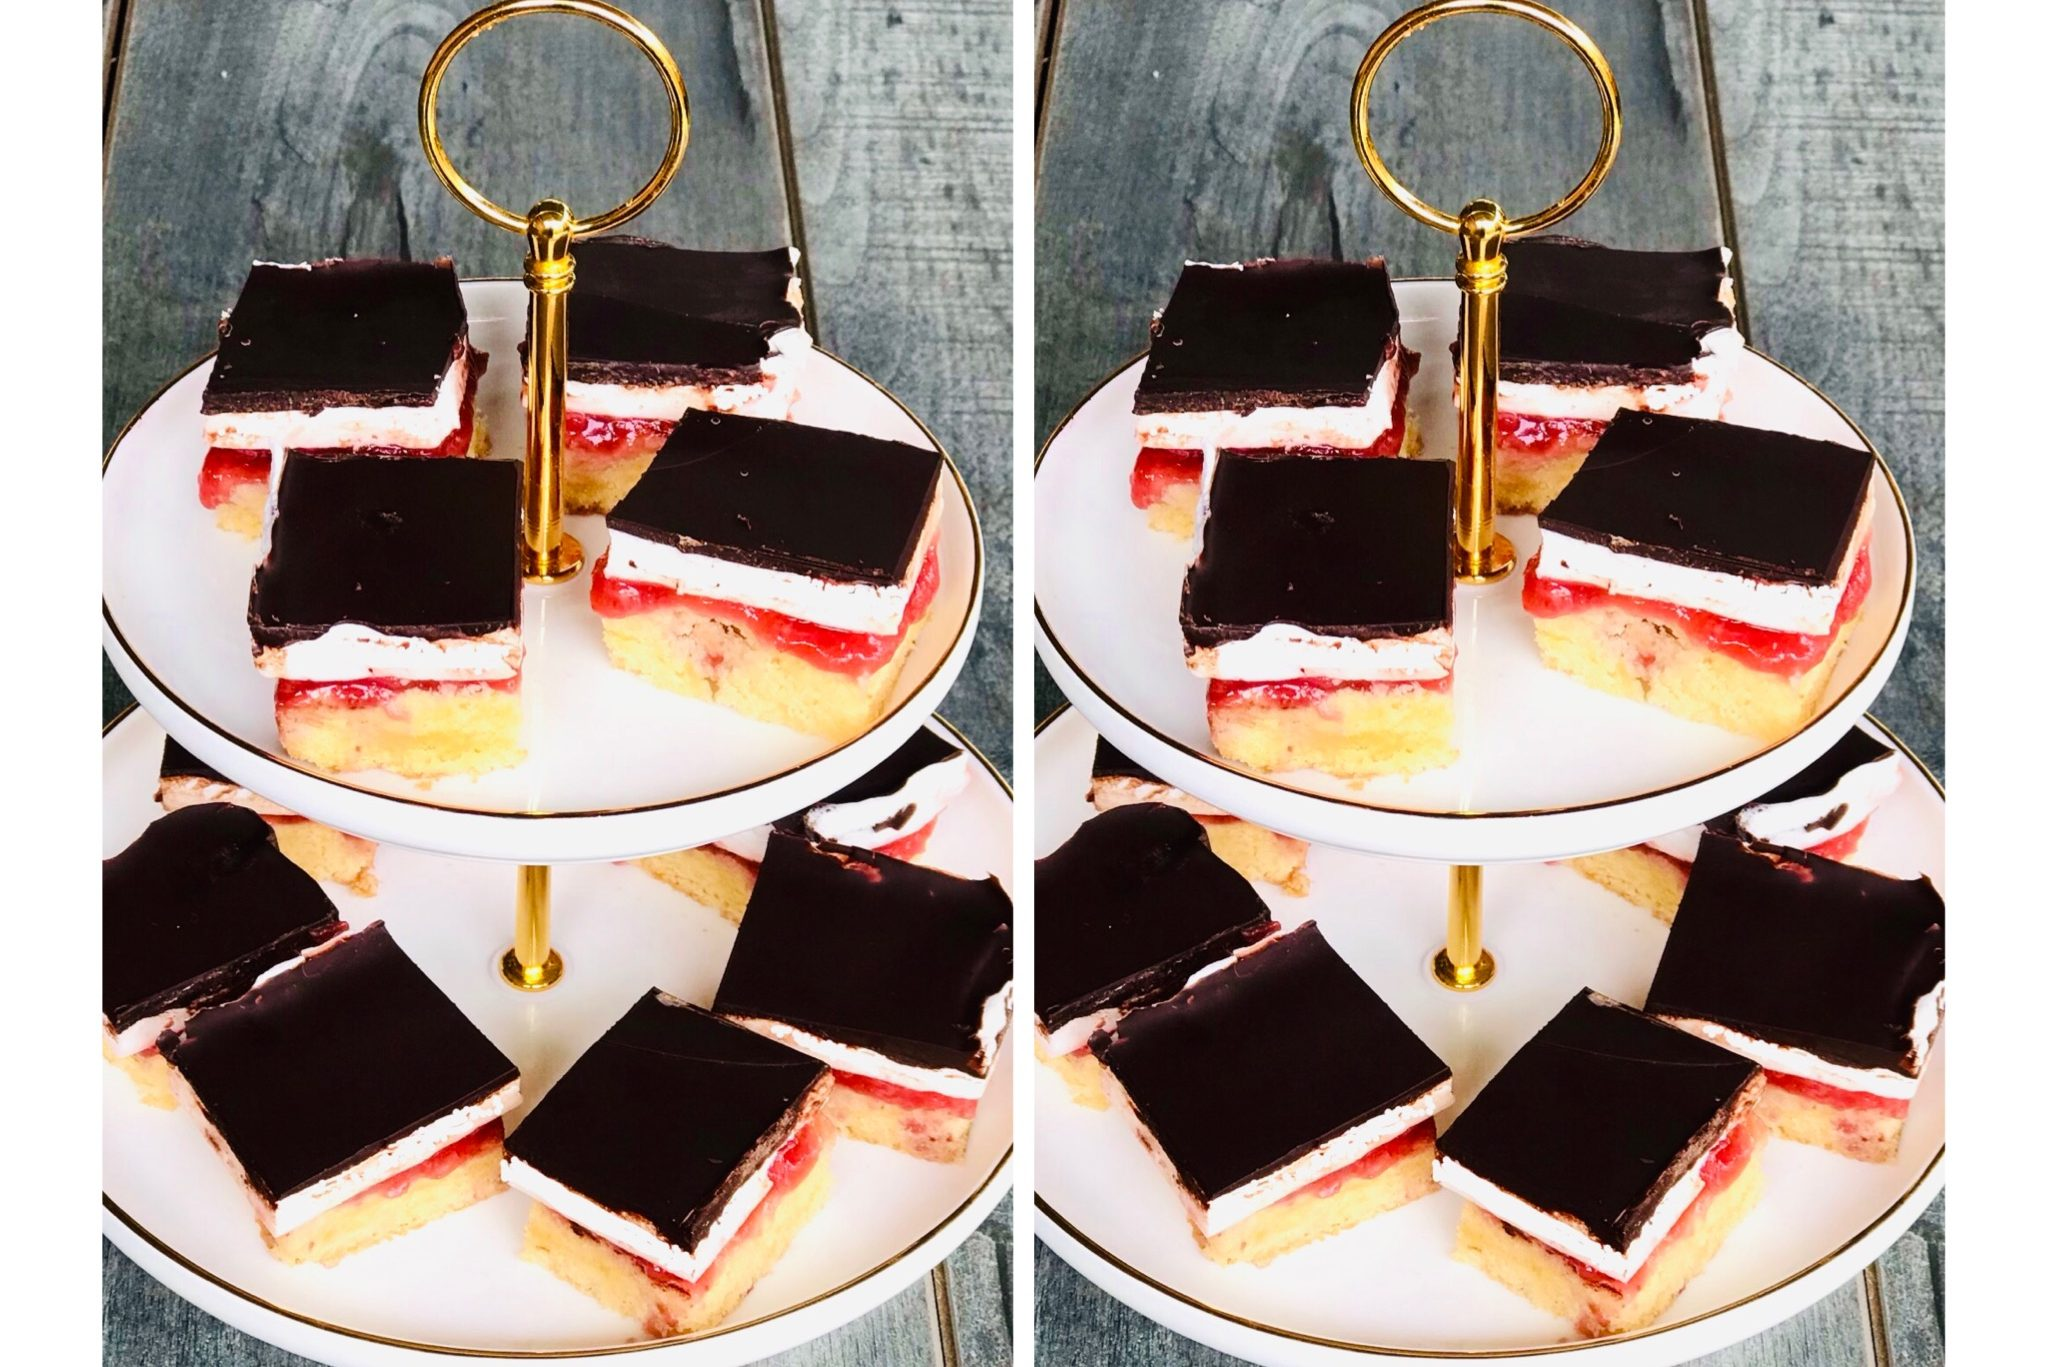 keto wagon wheel slice thermomix banting lchf low carb healthy fat delicious